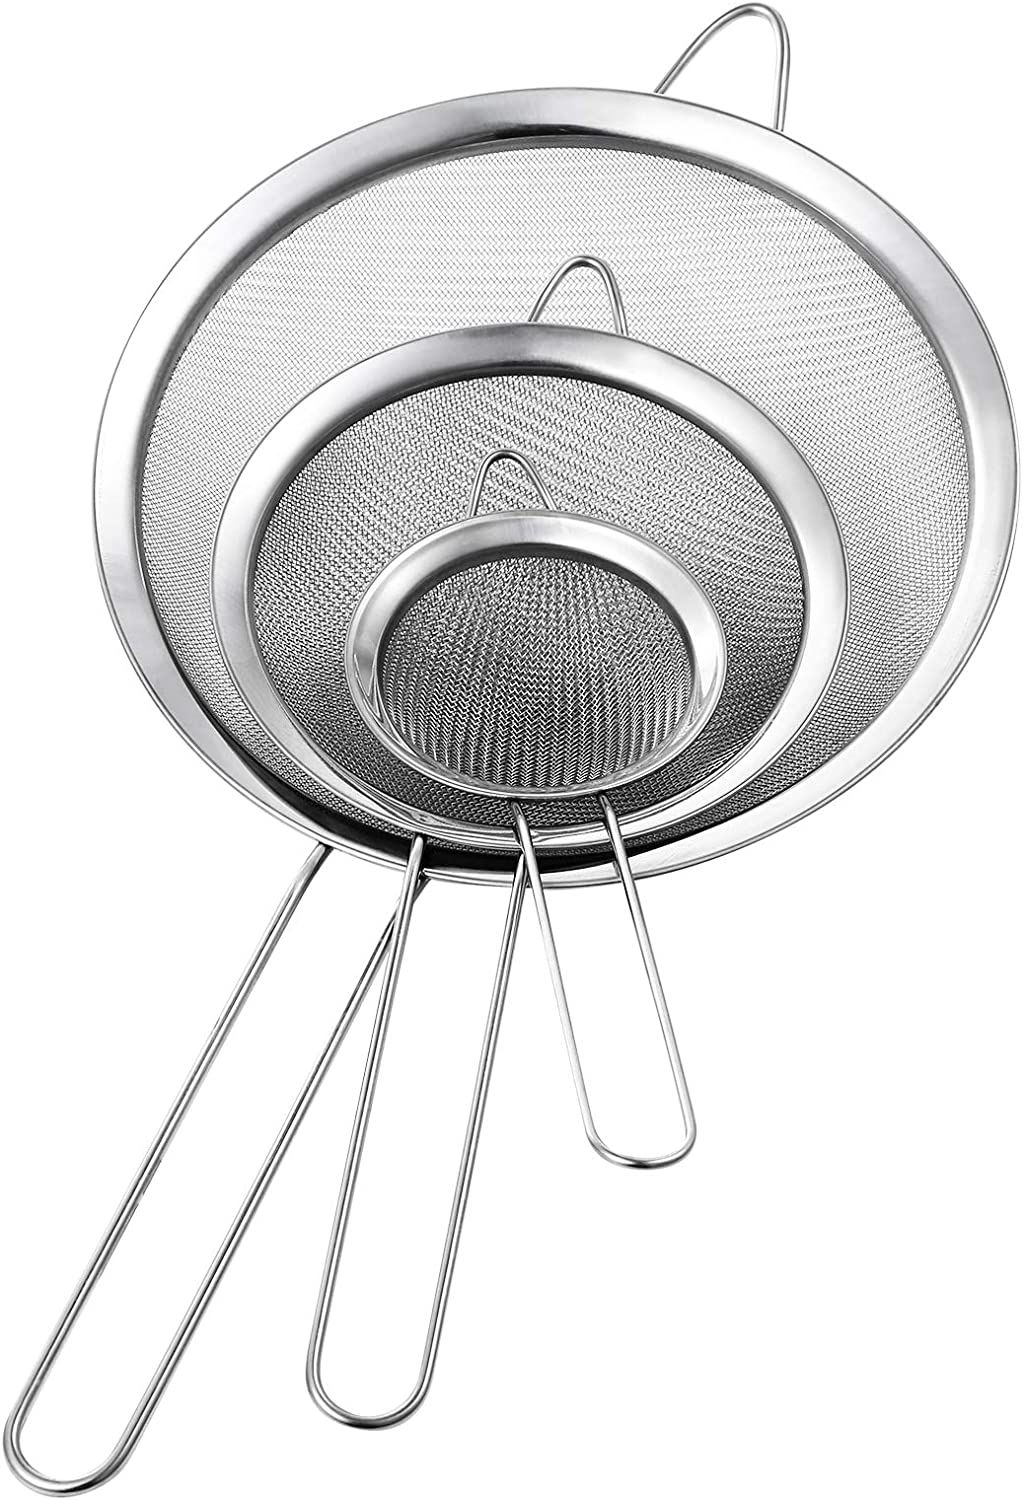 Yqlinnn Fine Mesh Strainer, Set of 3 Stainless Steel Fine Mesh Strainers for Kitchen, Use for Tea, Flour, Pasta, Rice, Juice, Vegetable, Fruit, Etc, 3.15